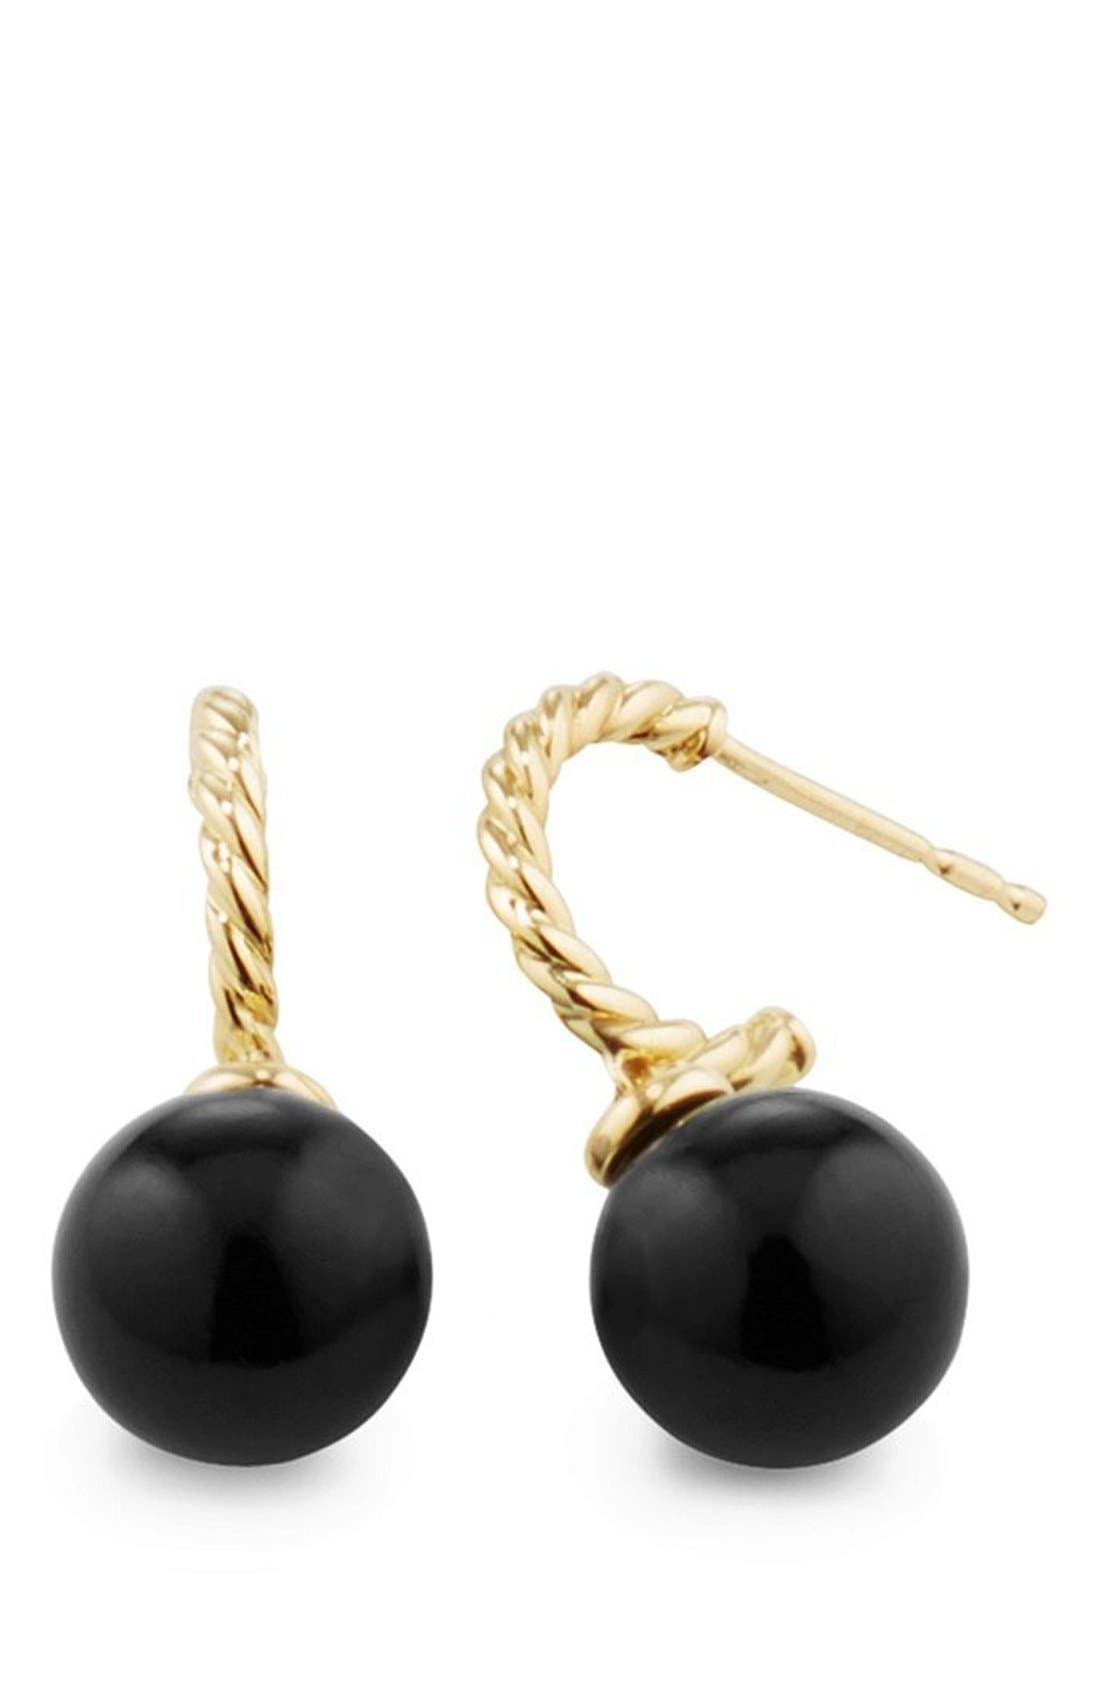 'Solari' Hoop Earrings in 18K Gold,                             Alternate thumbnail 2, color,                             BLACK ONYX